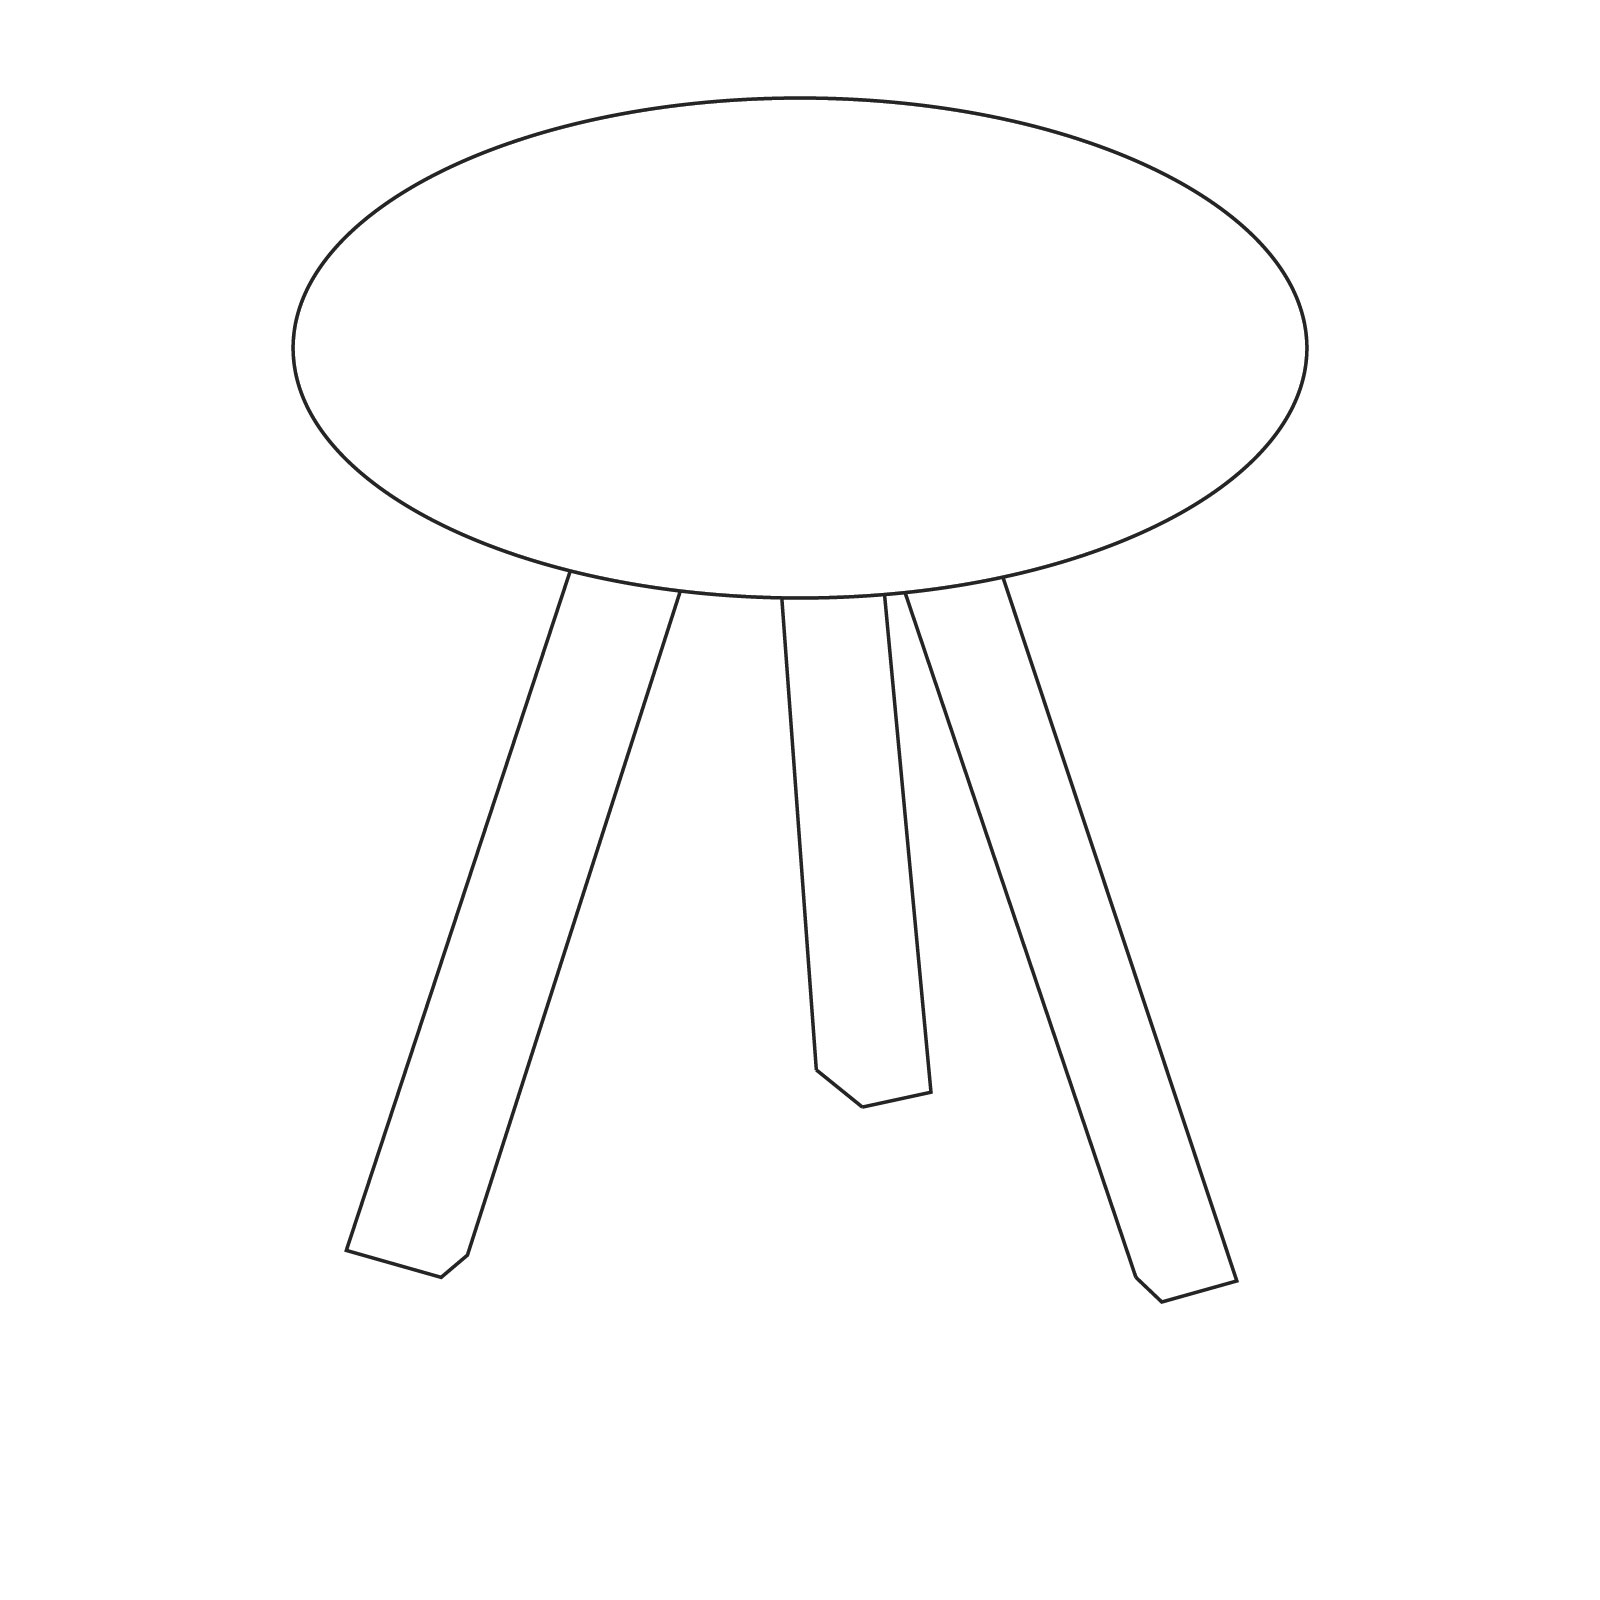 A line drawing of Copenhague Side Table–Round.